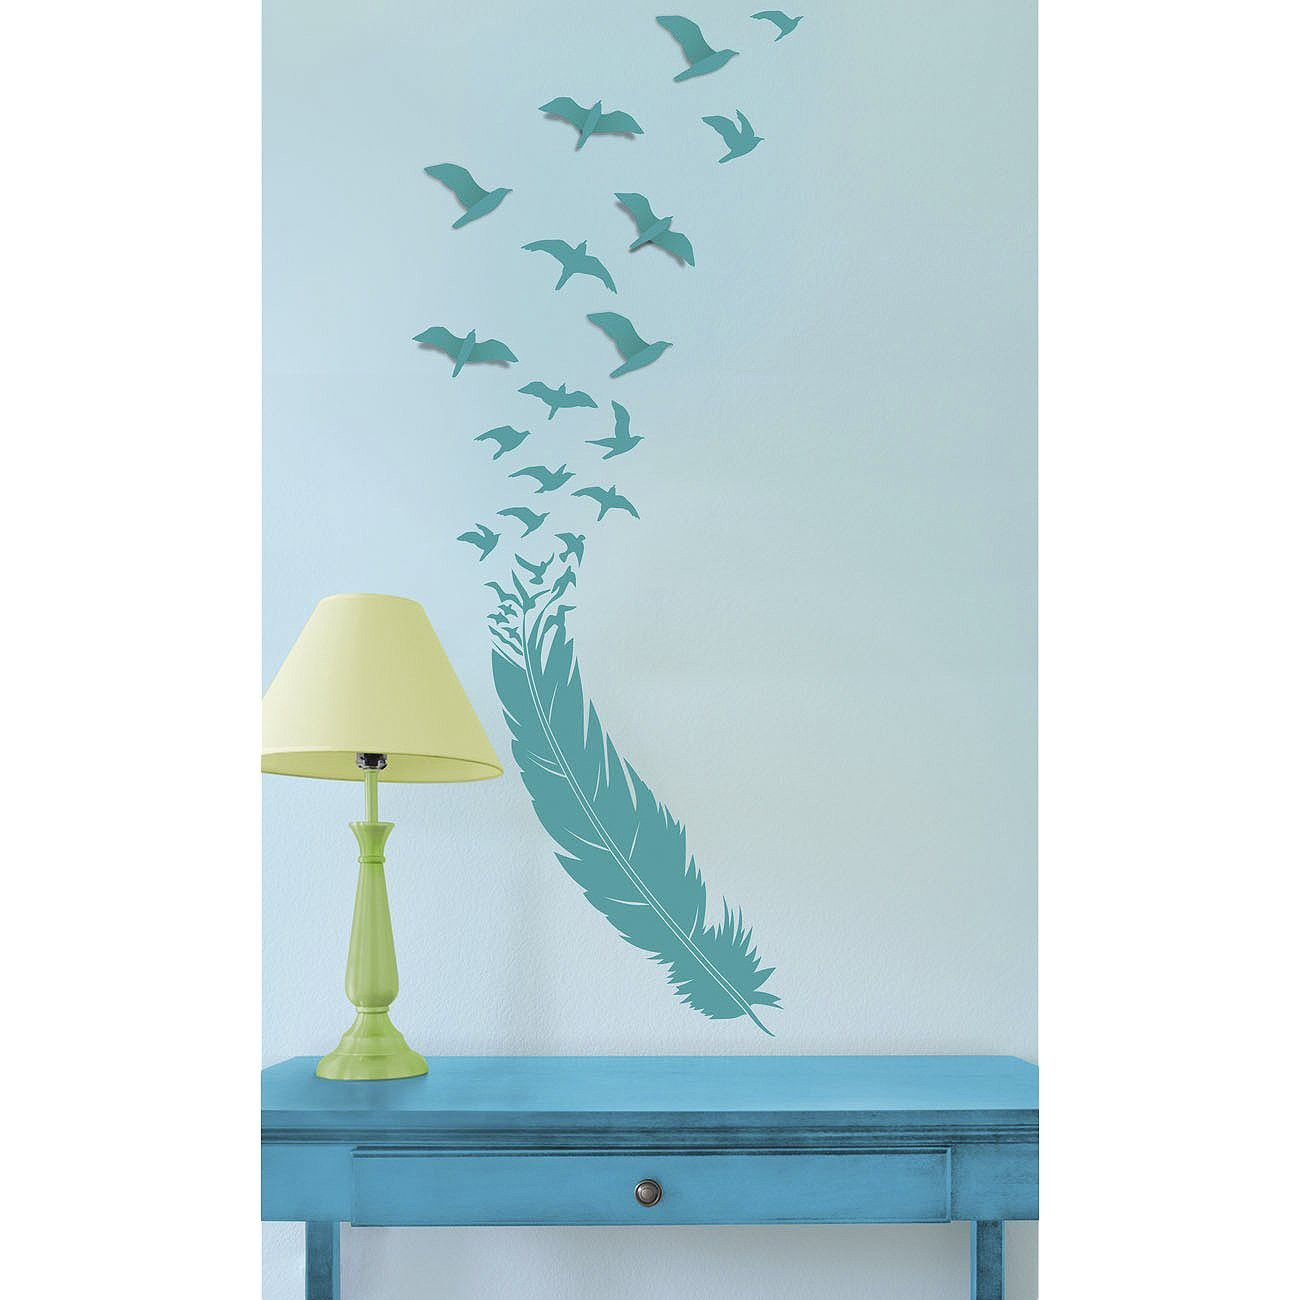 Xhilaration Wall Decor : Xhilaration? birds in flight wall decal target dorm